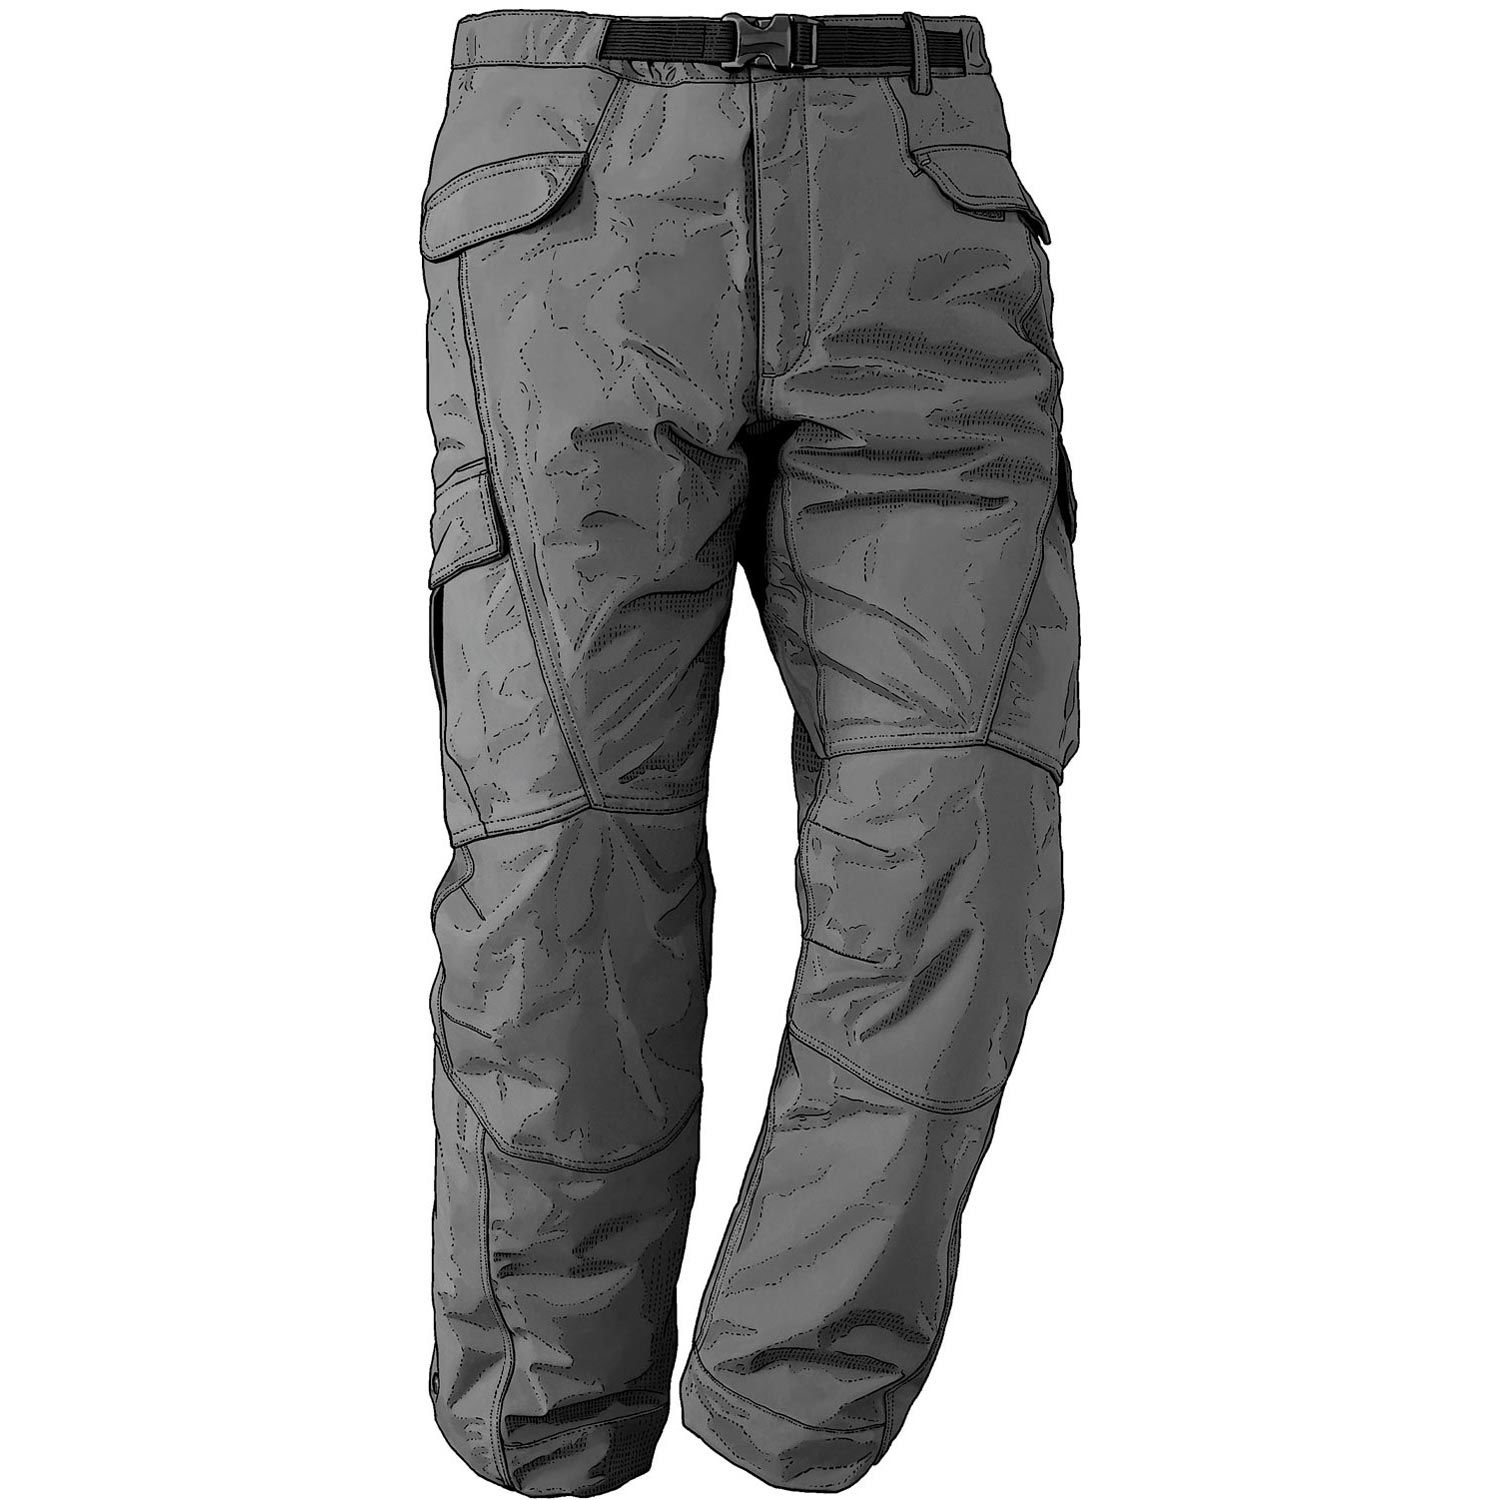 Wear the cargo jeans to look   most trendy